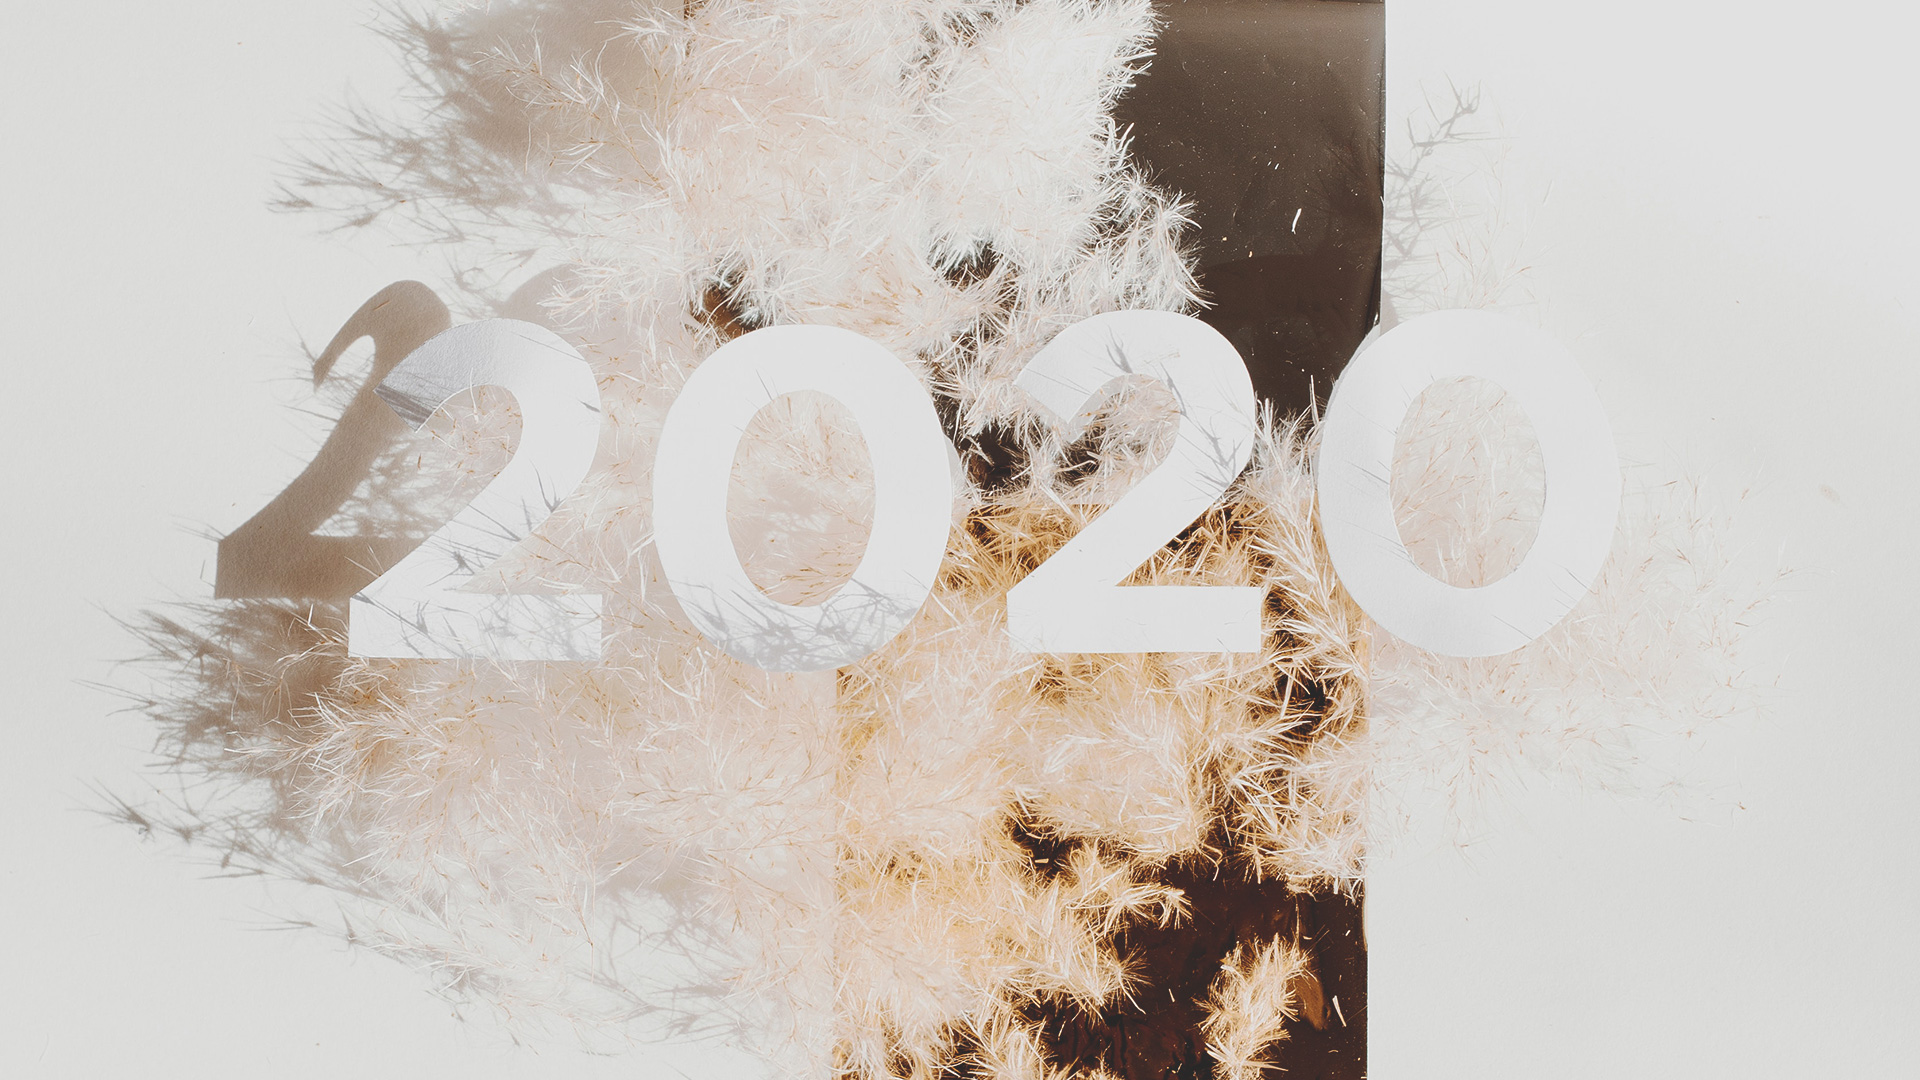 Why 2020 and 2021 Matter for You and the Rest of the World